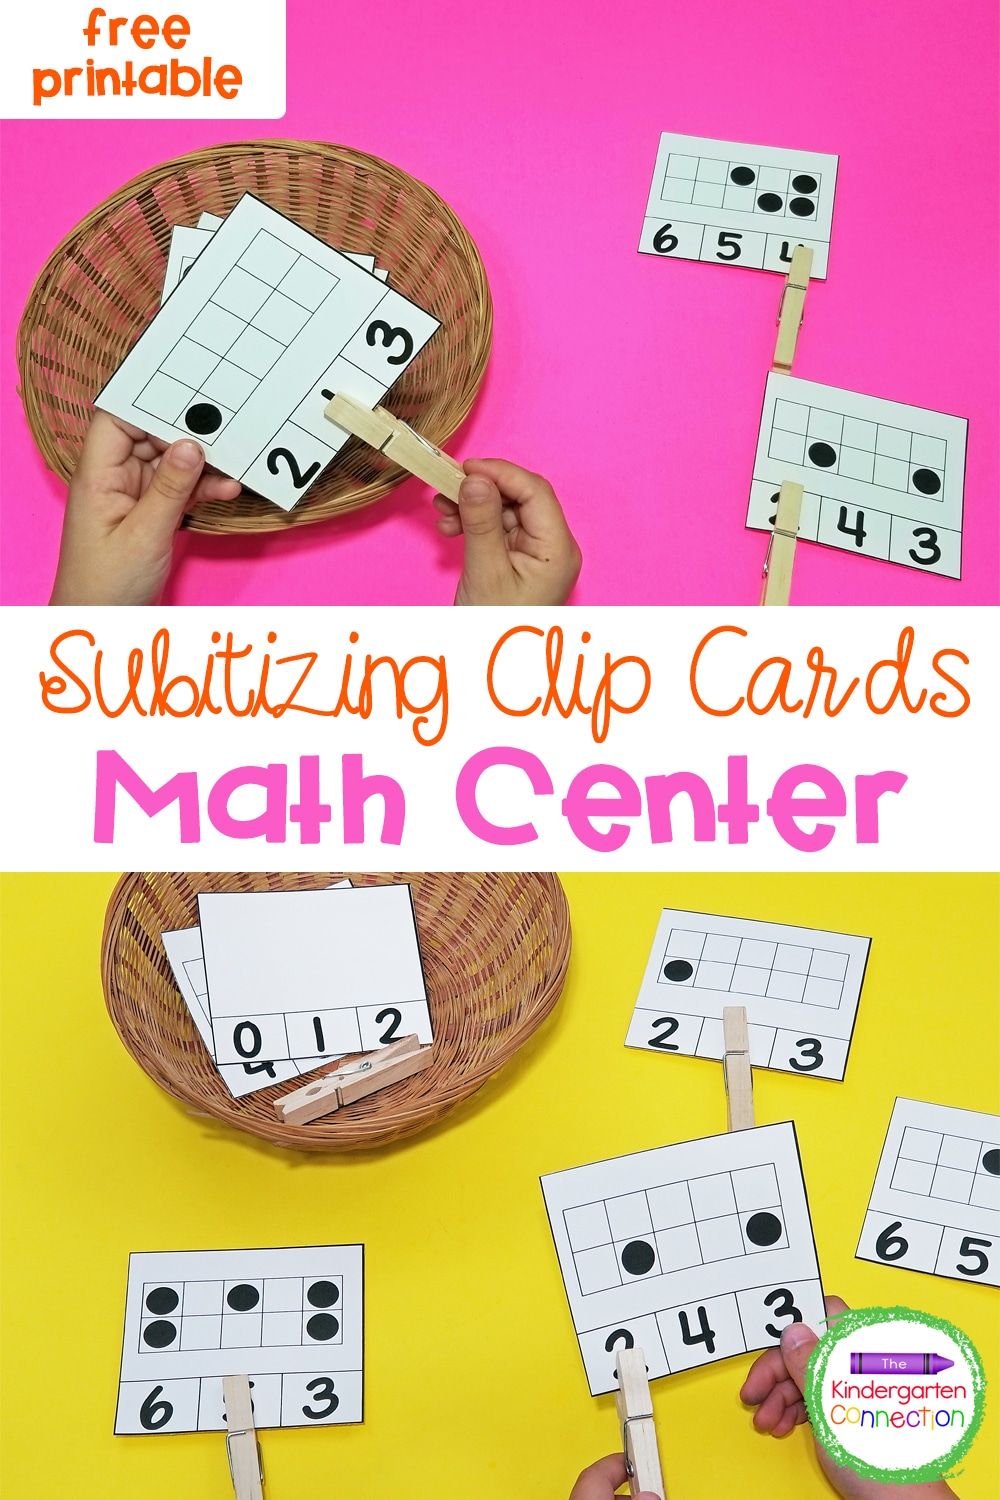 These fun and free Subitizing Math Clip Cards for Pre-K & Kindergarten will help your students build subitizing skills and number sense!